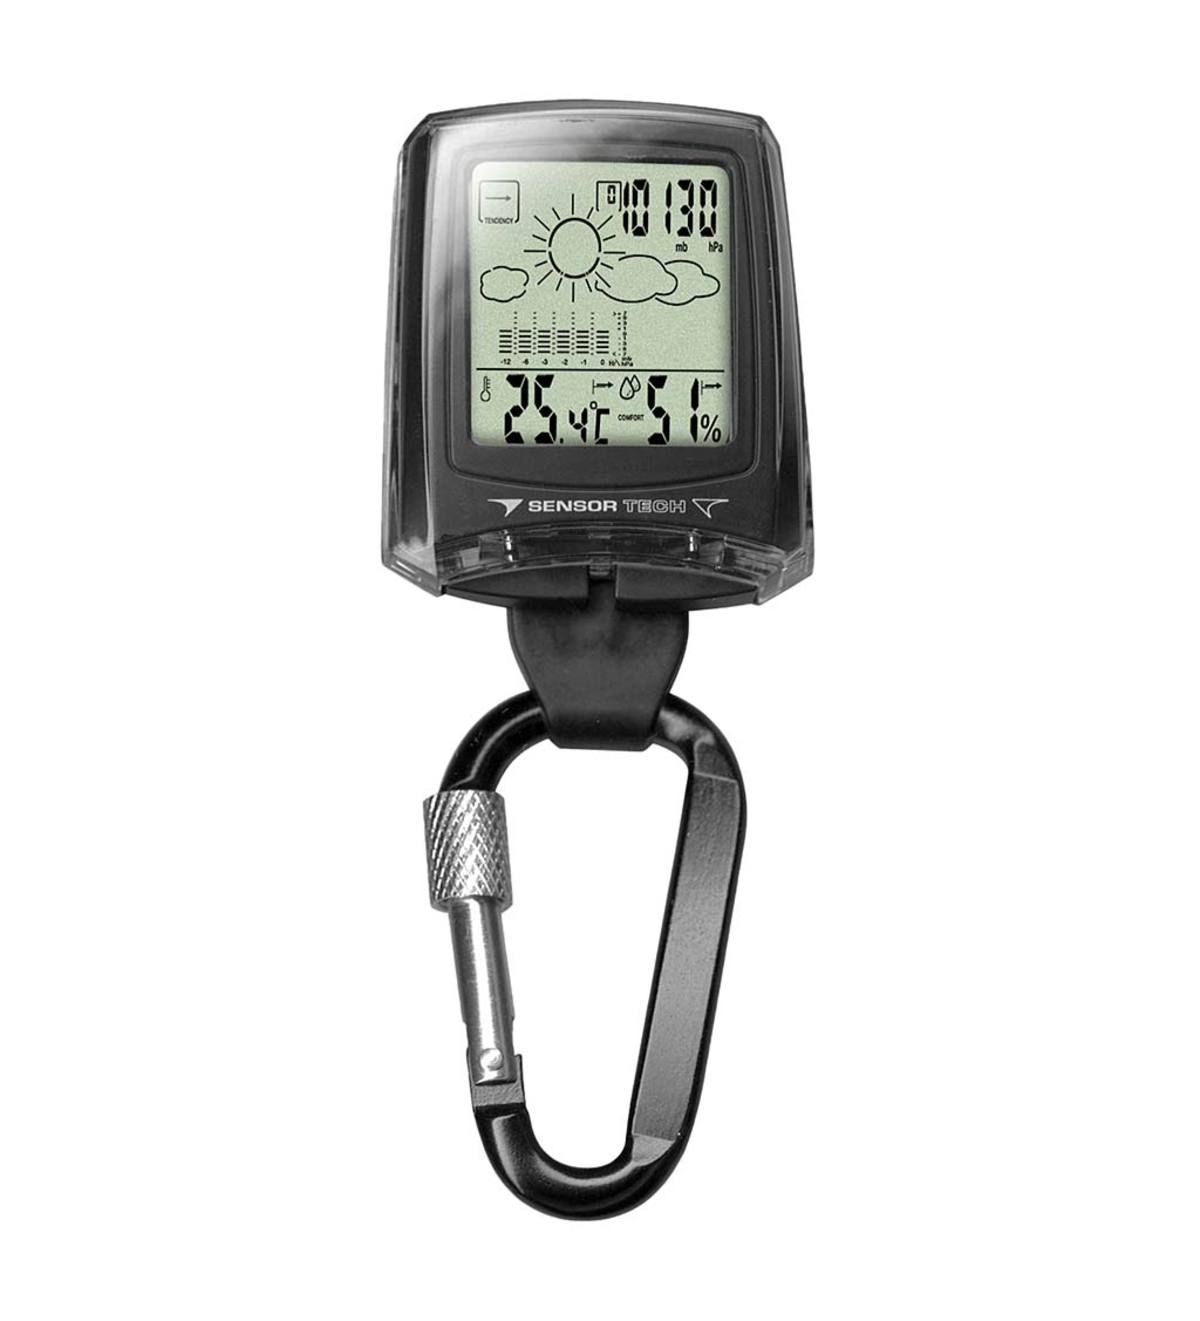 Digital Weather Station Clip Watch